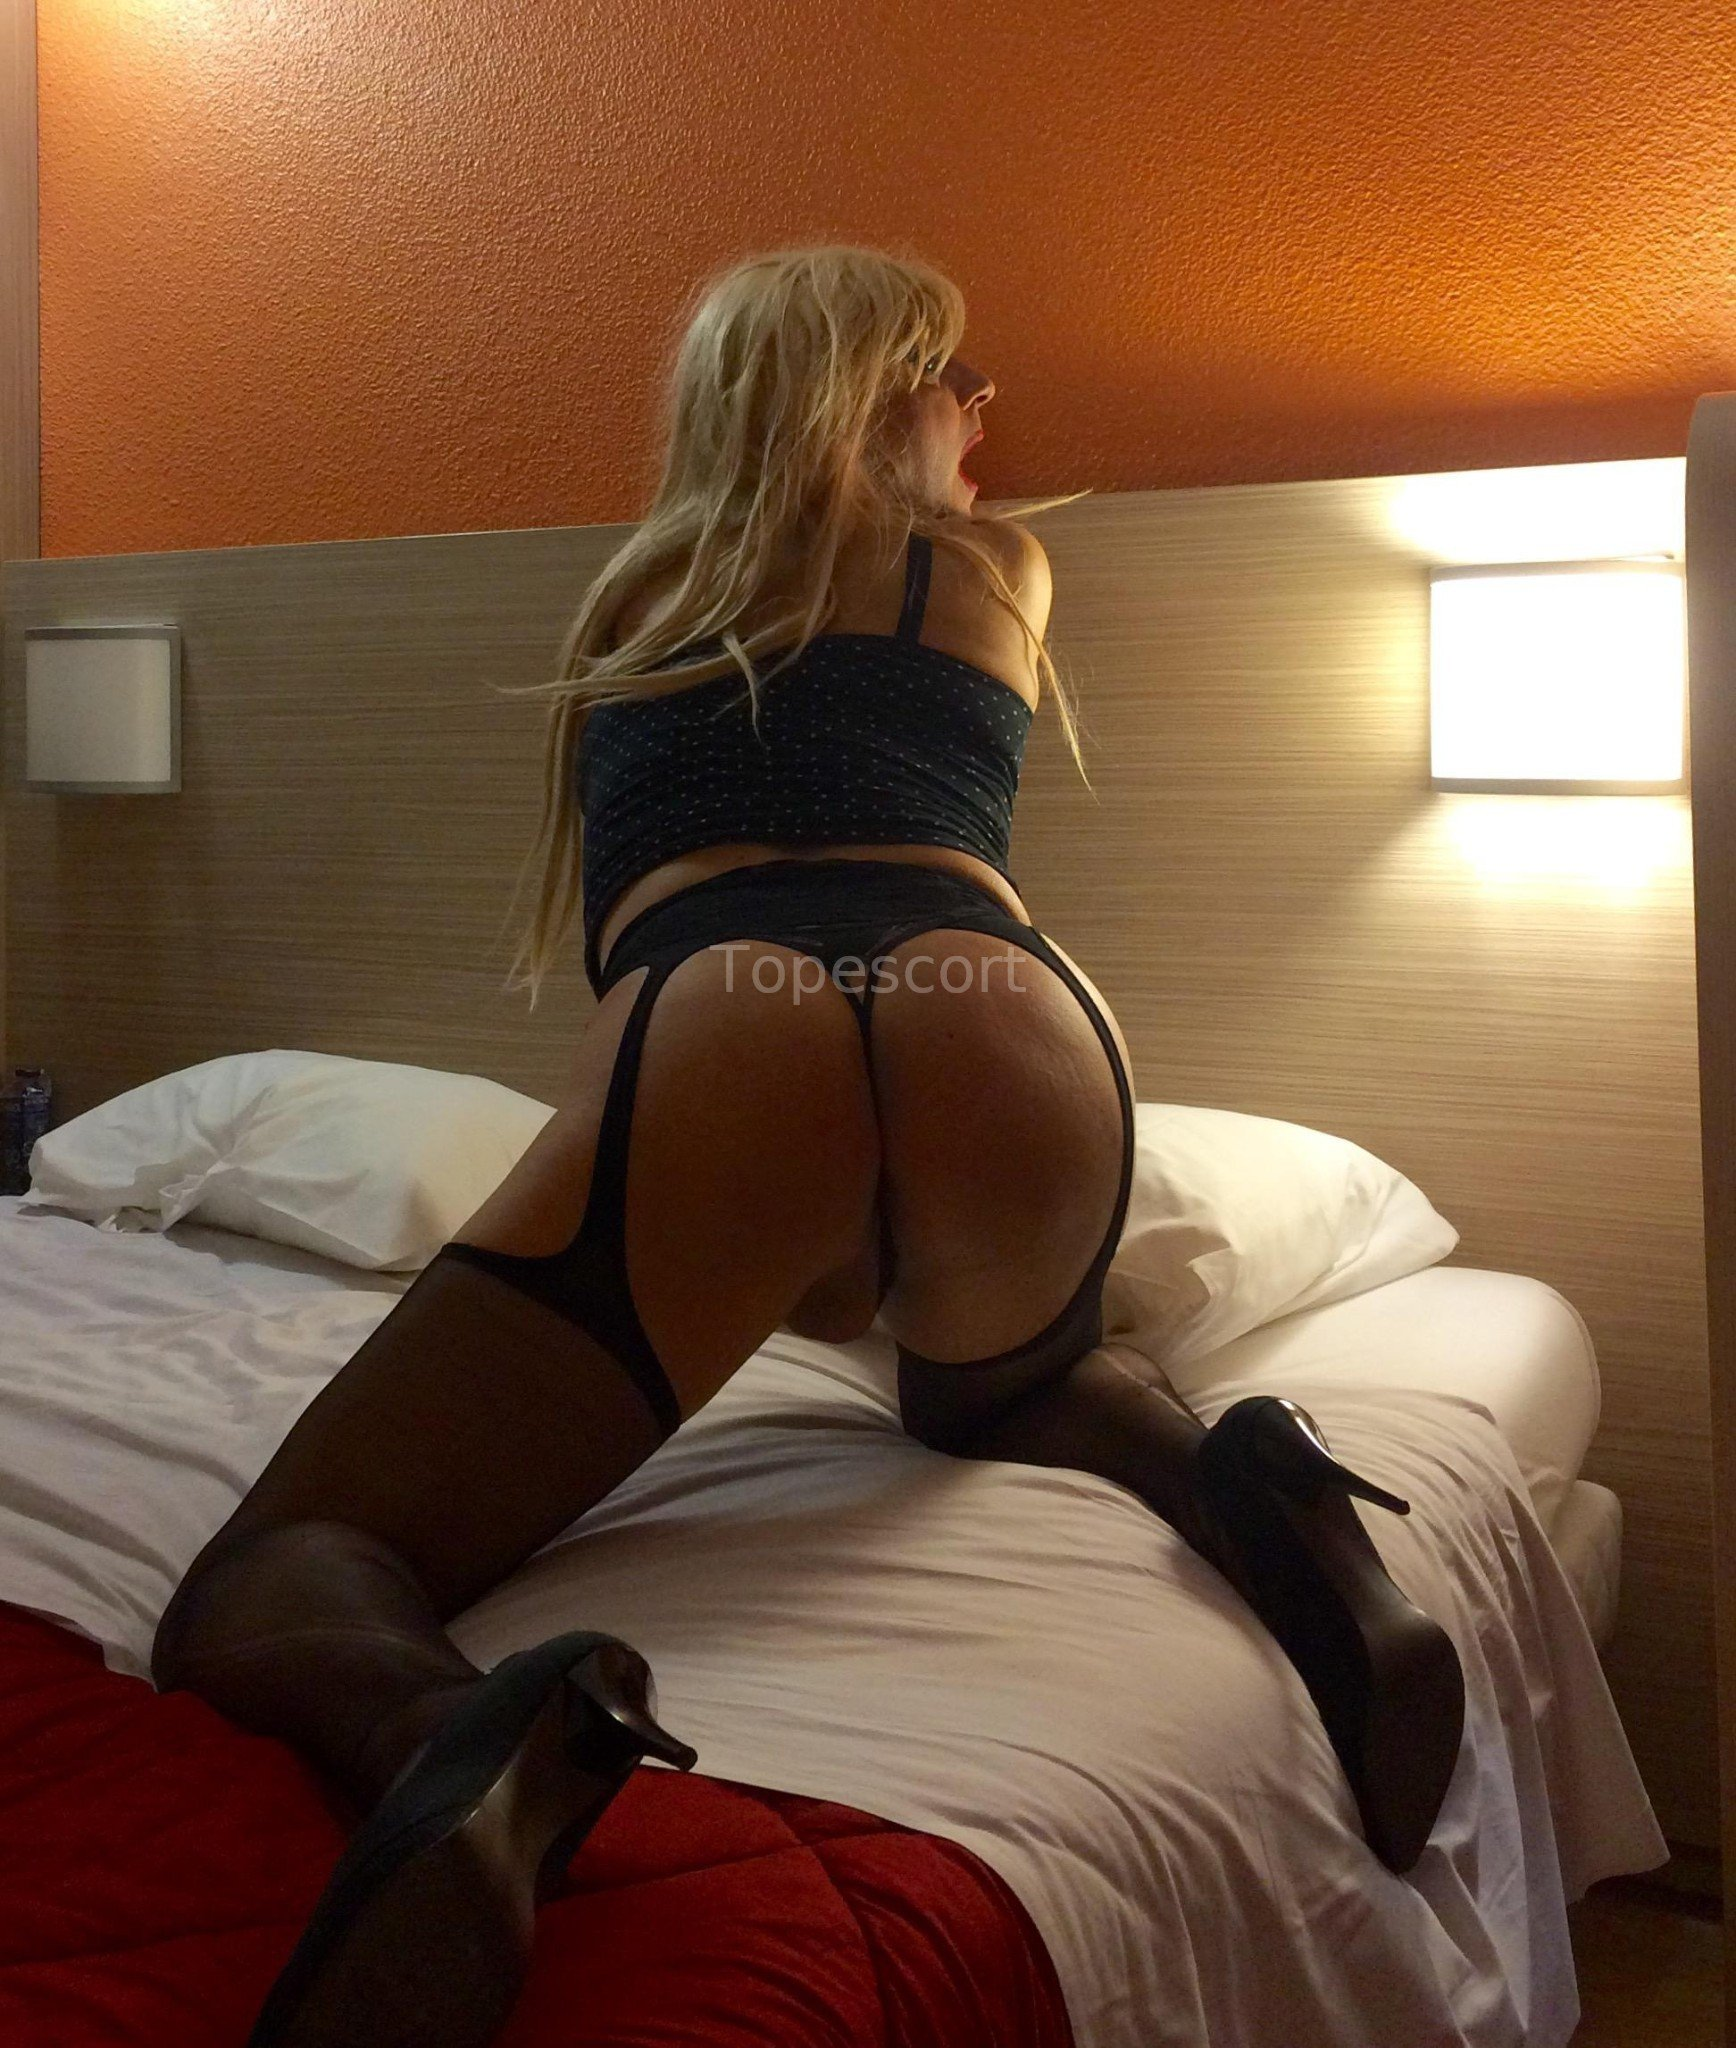 Backpage escort myrtle beach